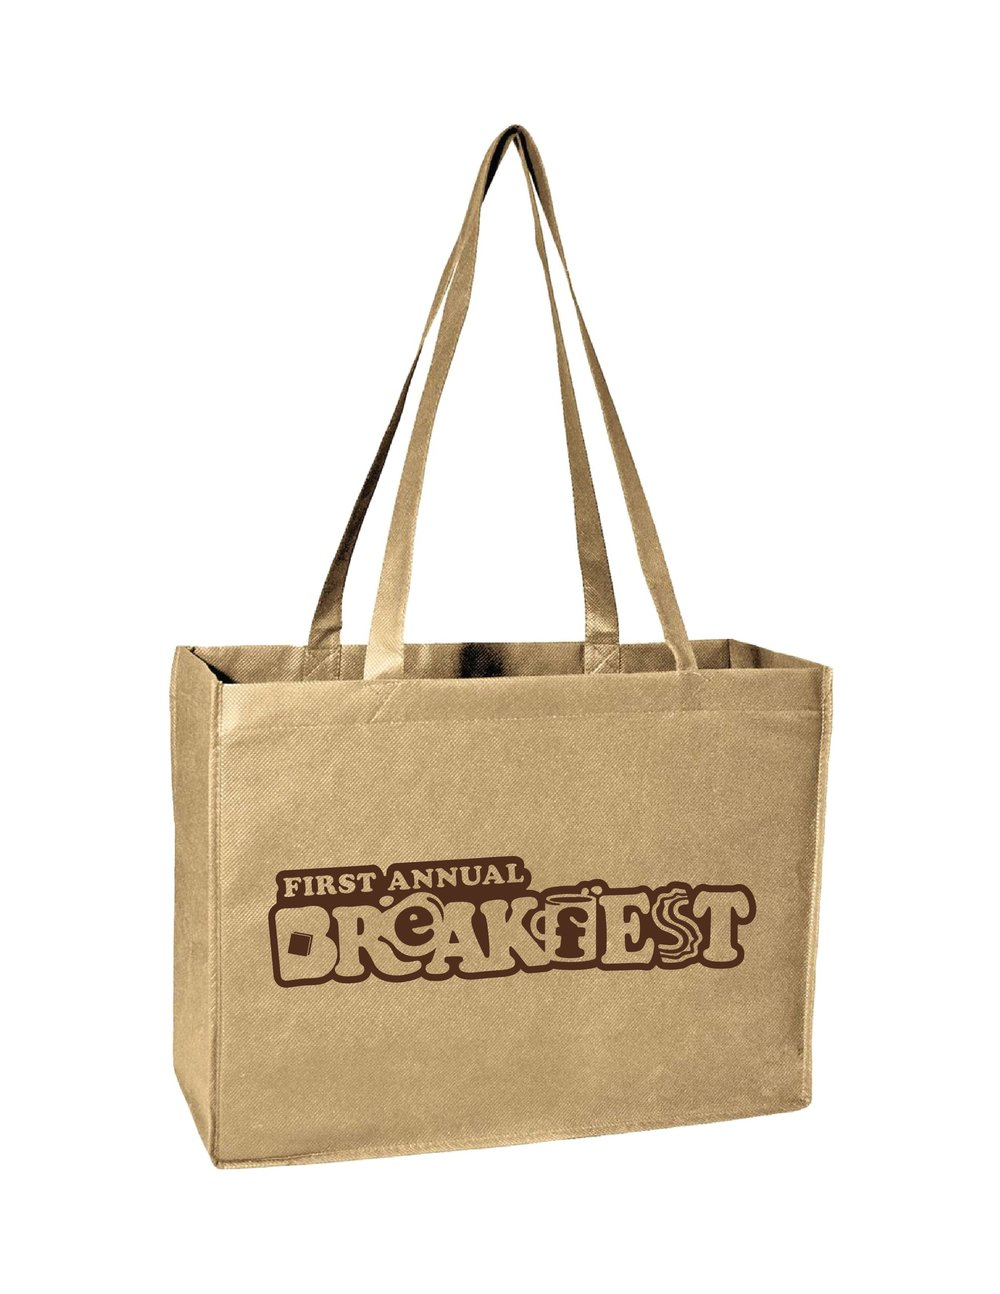 tote front-07.jpg